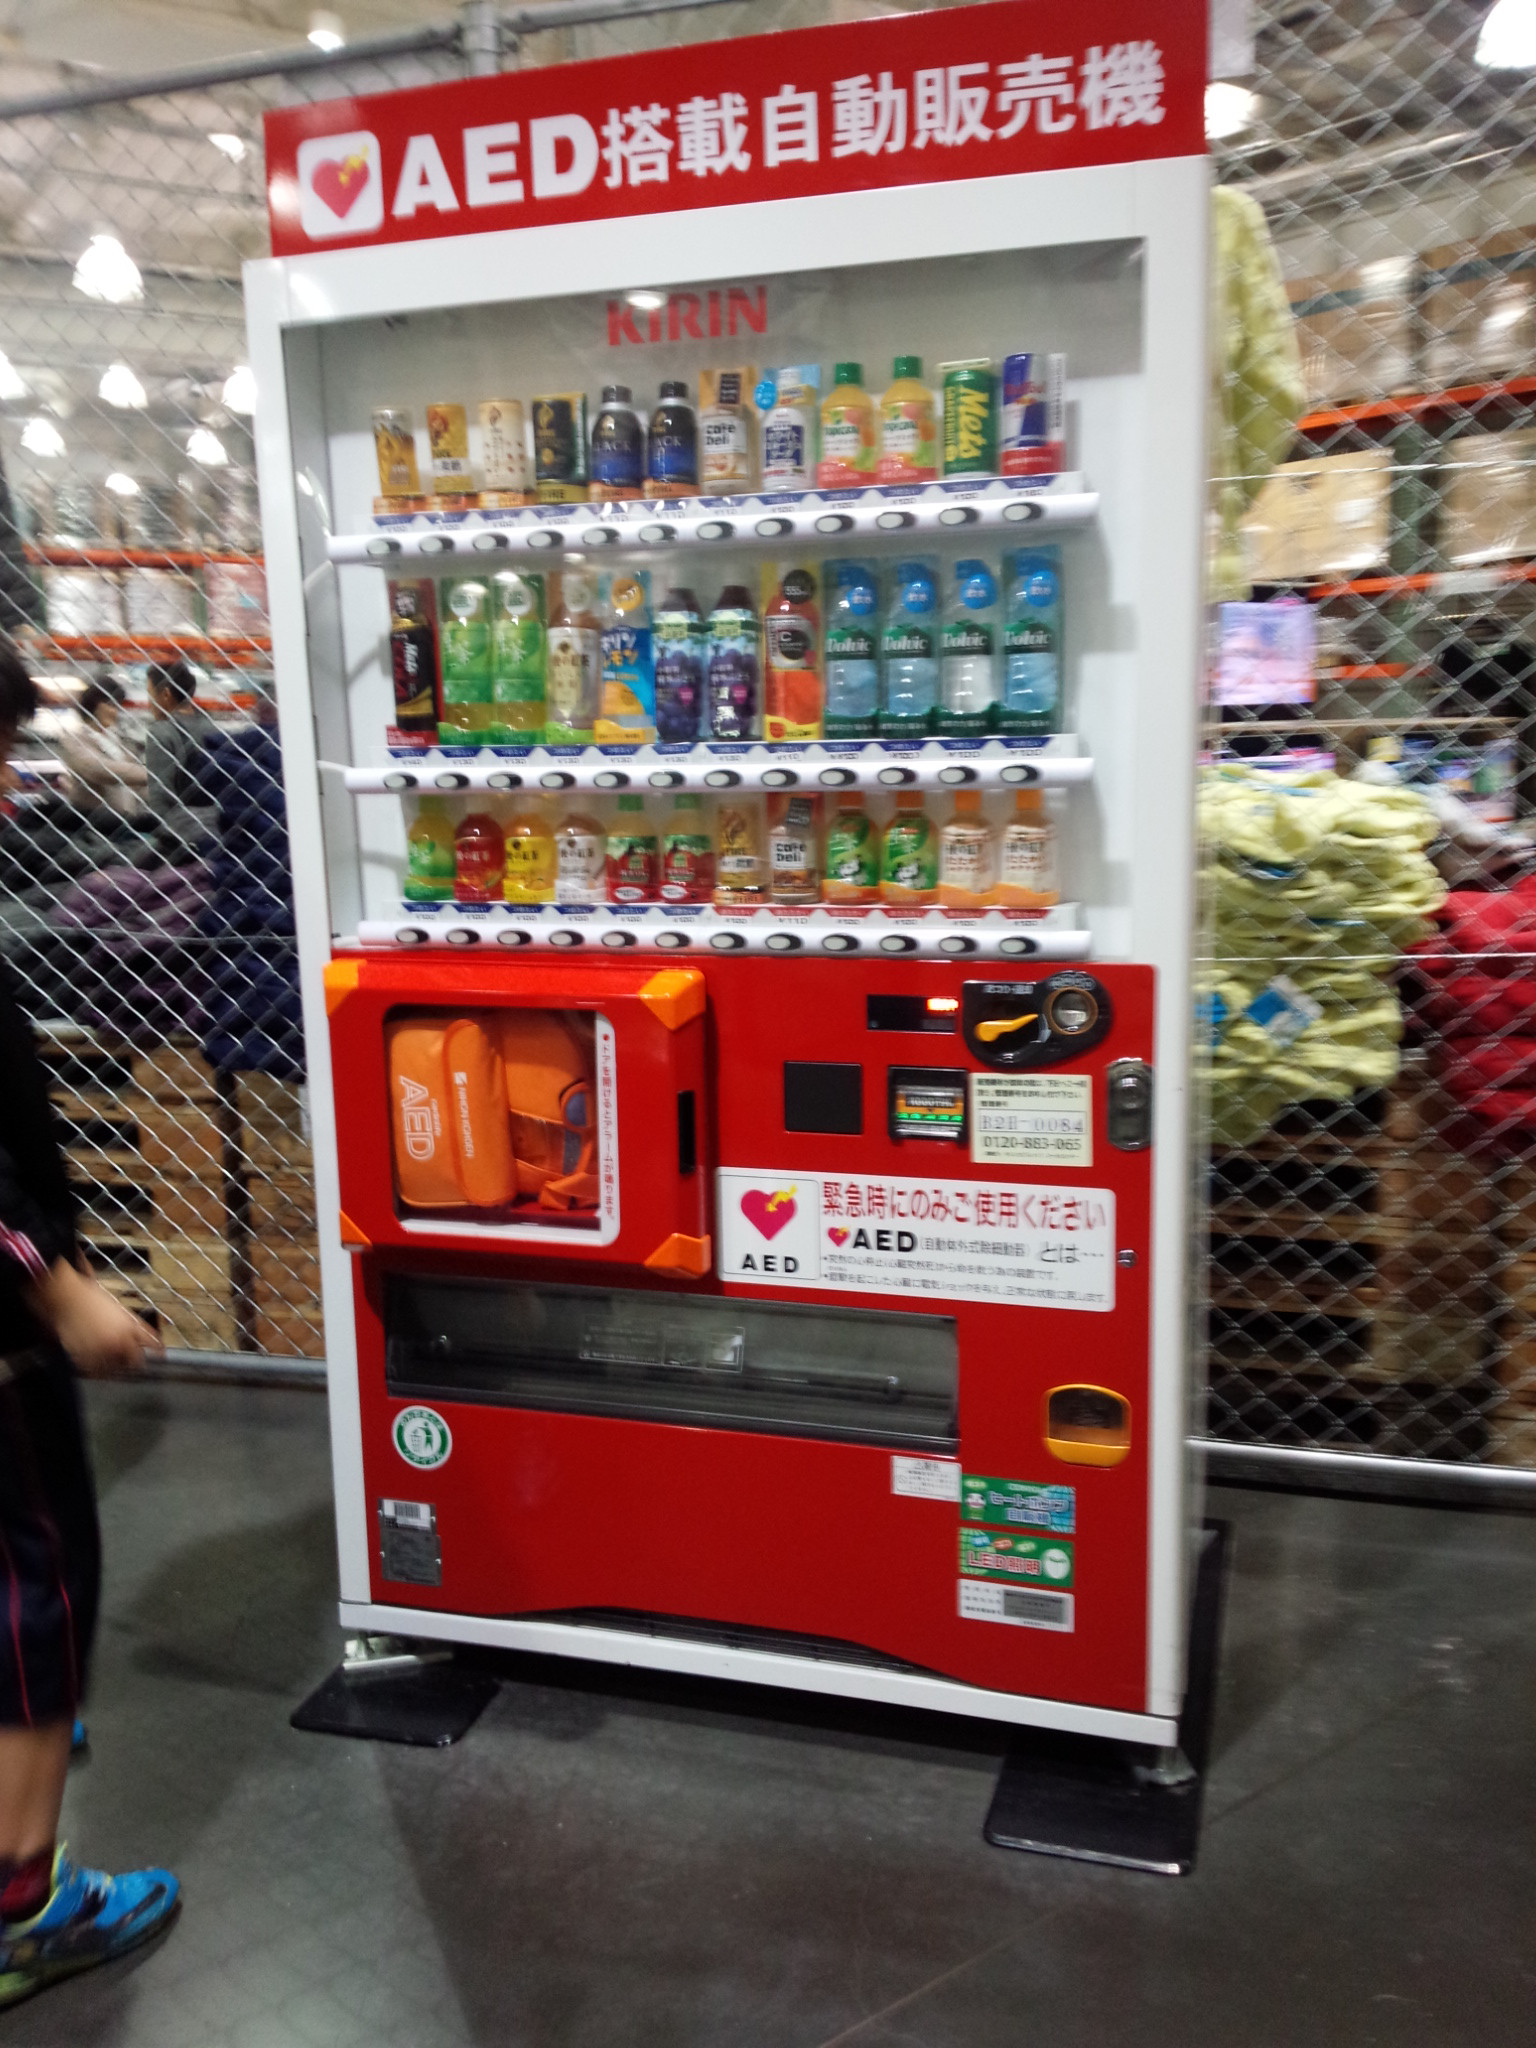 vending machine for AED